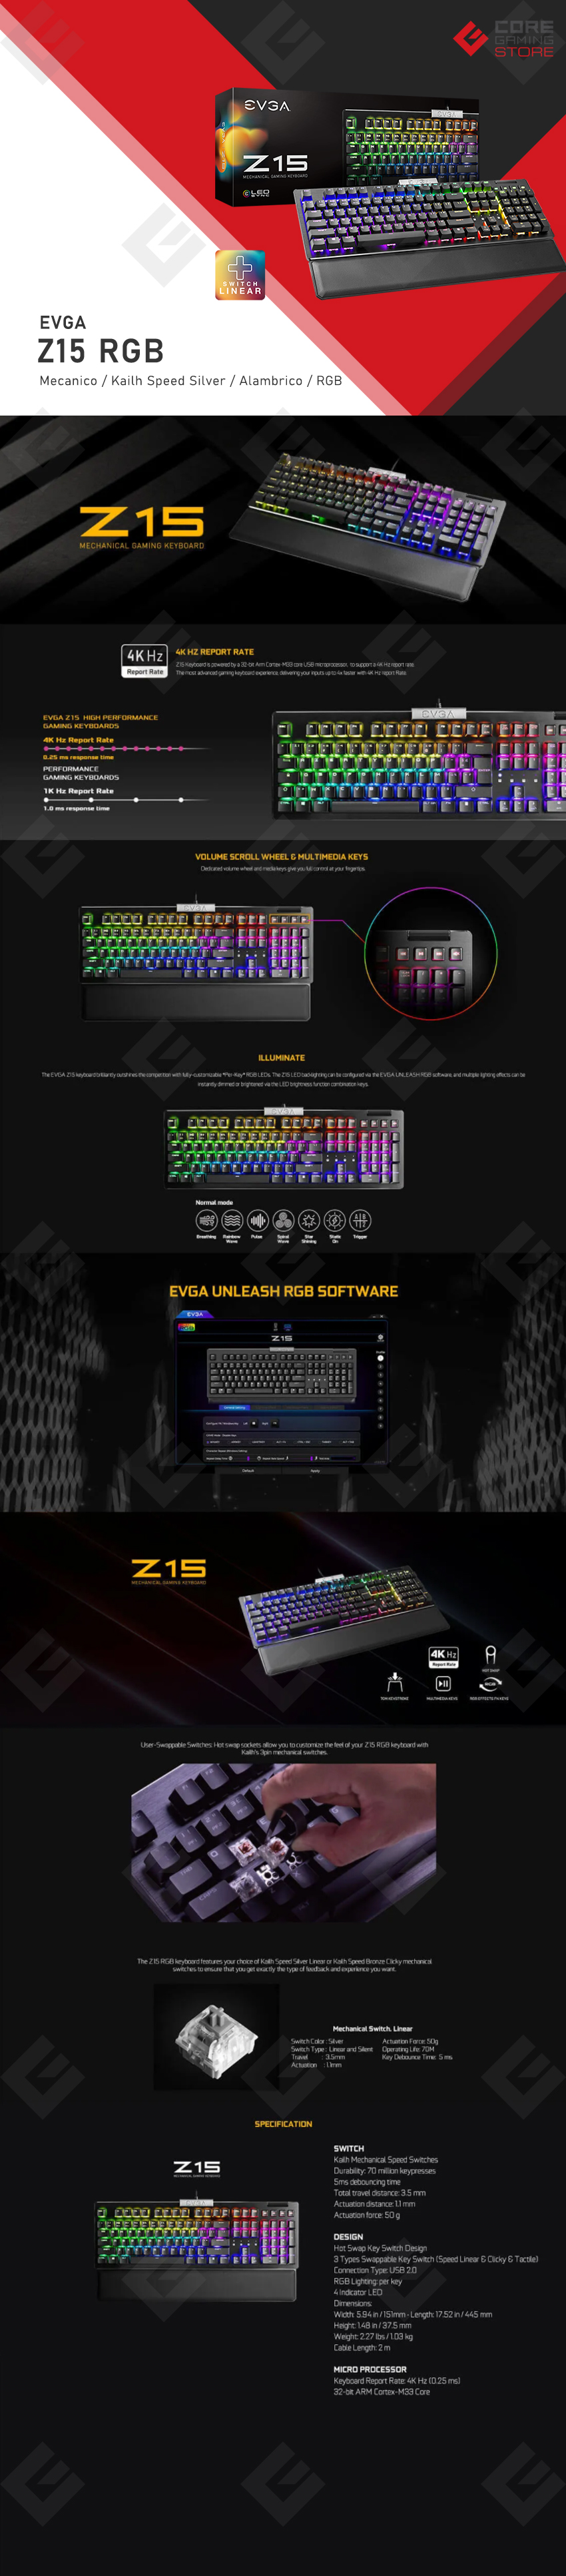 Teclado Mecanico EVGA Z15 RGB, Hot Swappable Switches, Kailh Speed Silver (Linear), Ingles - 821-W1-15US-KR